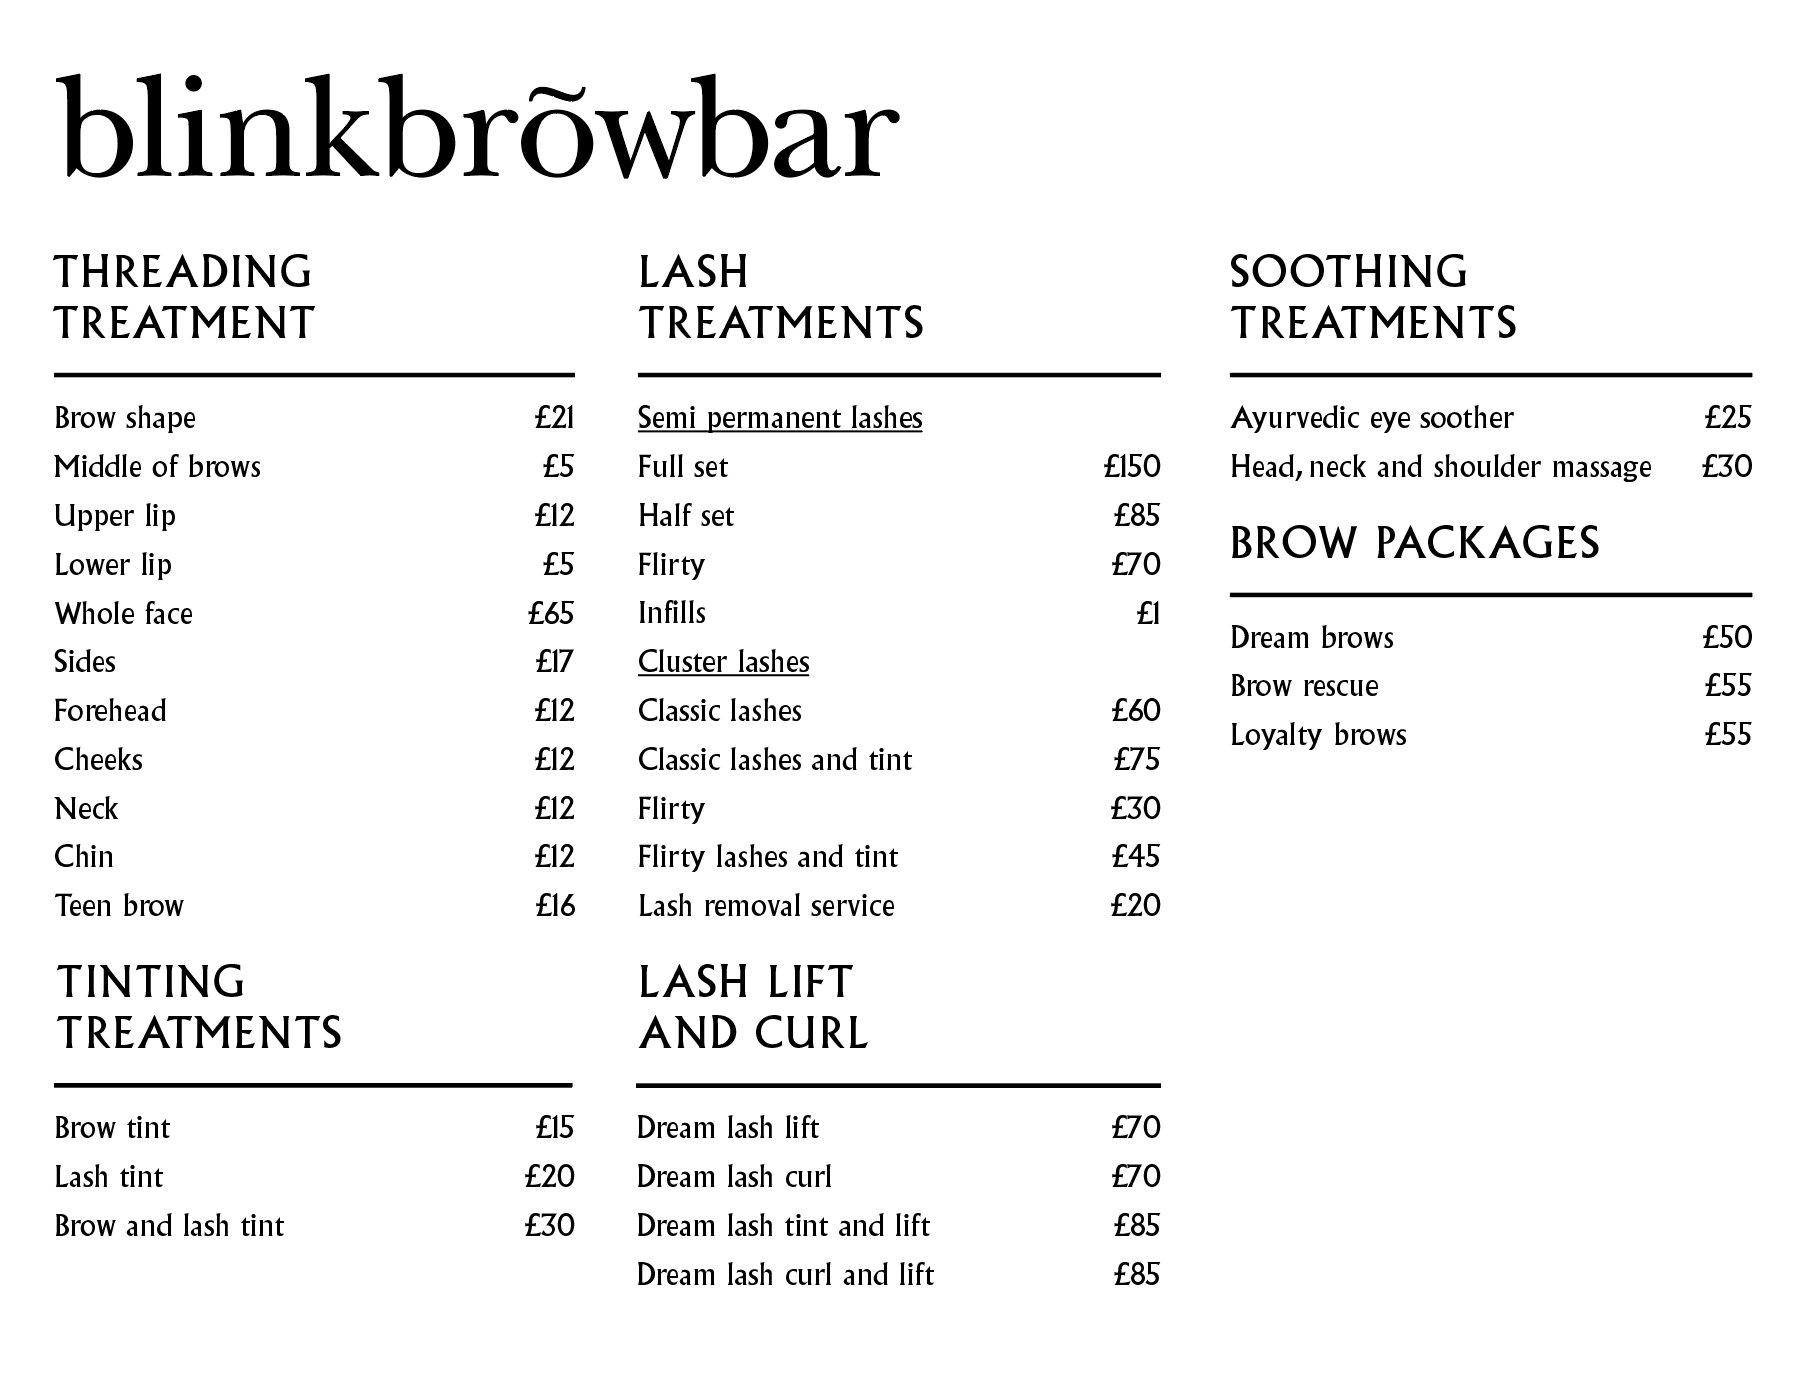 Blinkbrowbar Treatment Menu